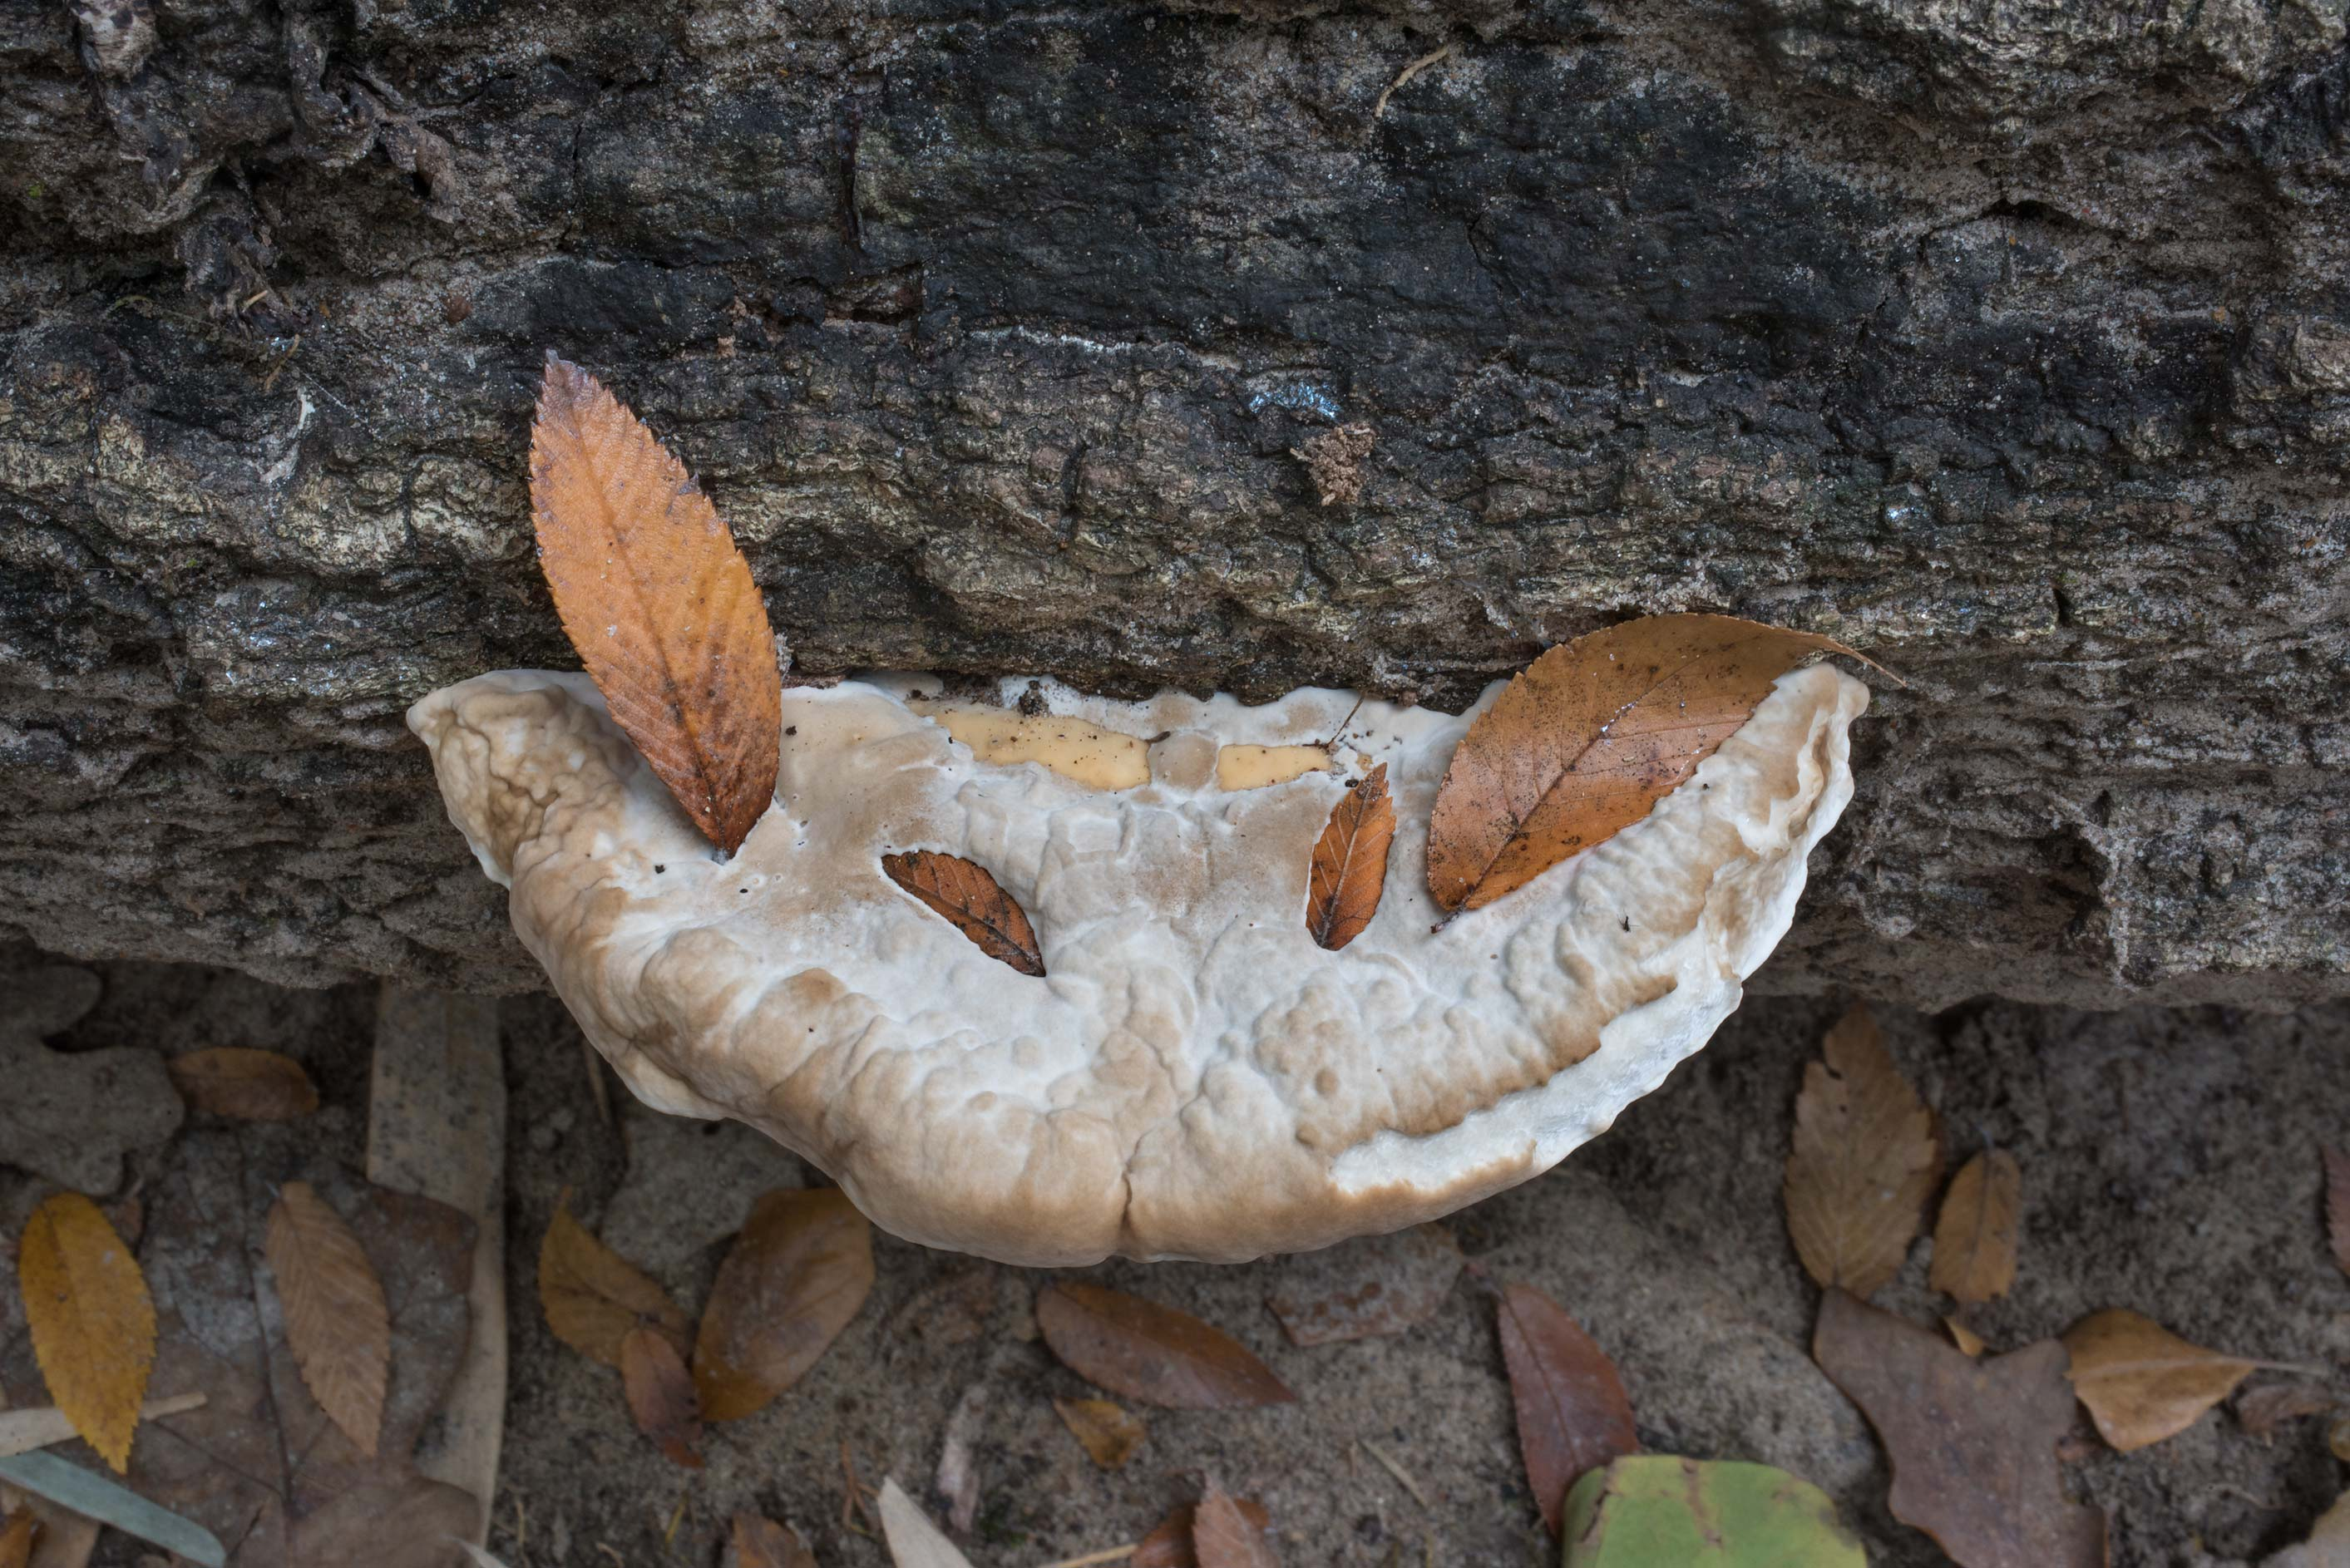 Some polypore bracket mushroom on a log near a...Nature Trail. College Station, Texas